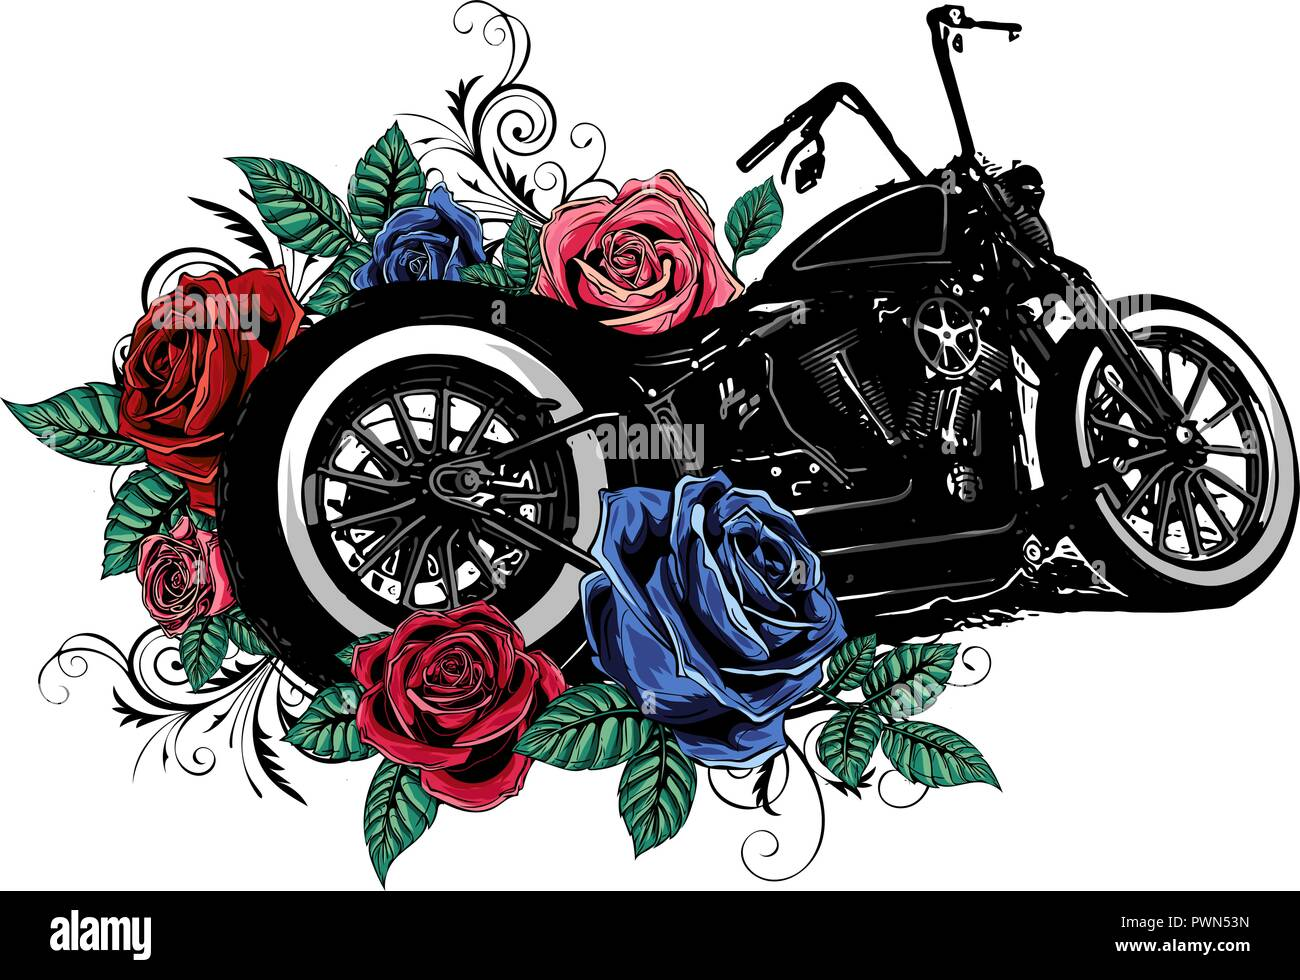 vector illustation vintage chopper motorcycle and roses poster - Stock Image